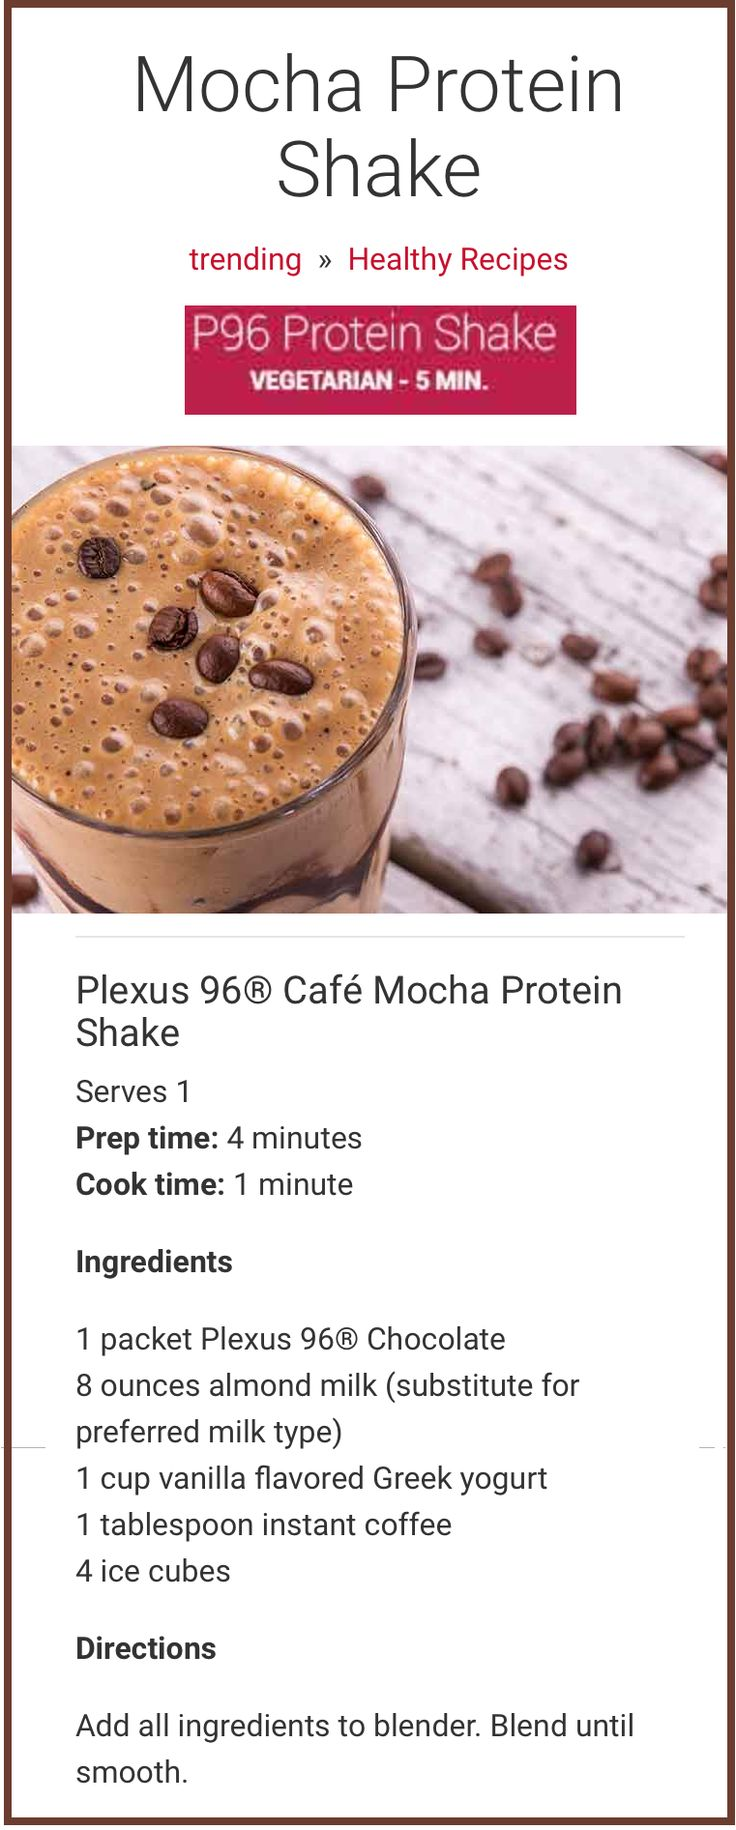 Coffee and chocolate combine to create a cafe mocha protein shake sure to become every coffee lover's dream. Unlike blended coffee drinks from your local coffee shop, this protein smoothie features 15 grams of protein, more than 20 vitamins and minerals, and Plexus 96® Chocolate whey protein powder, making it a healthy, post-workout snack or chocolate-java fix.